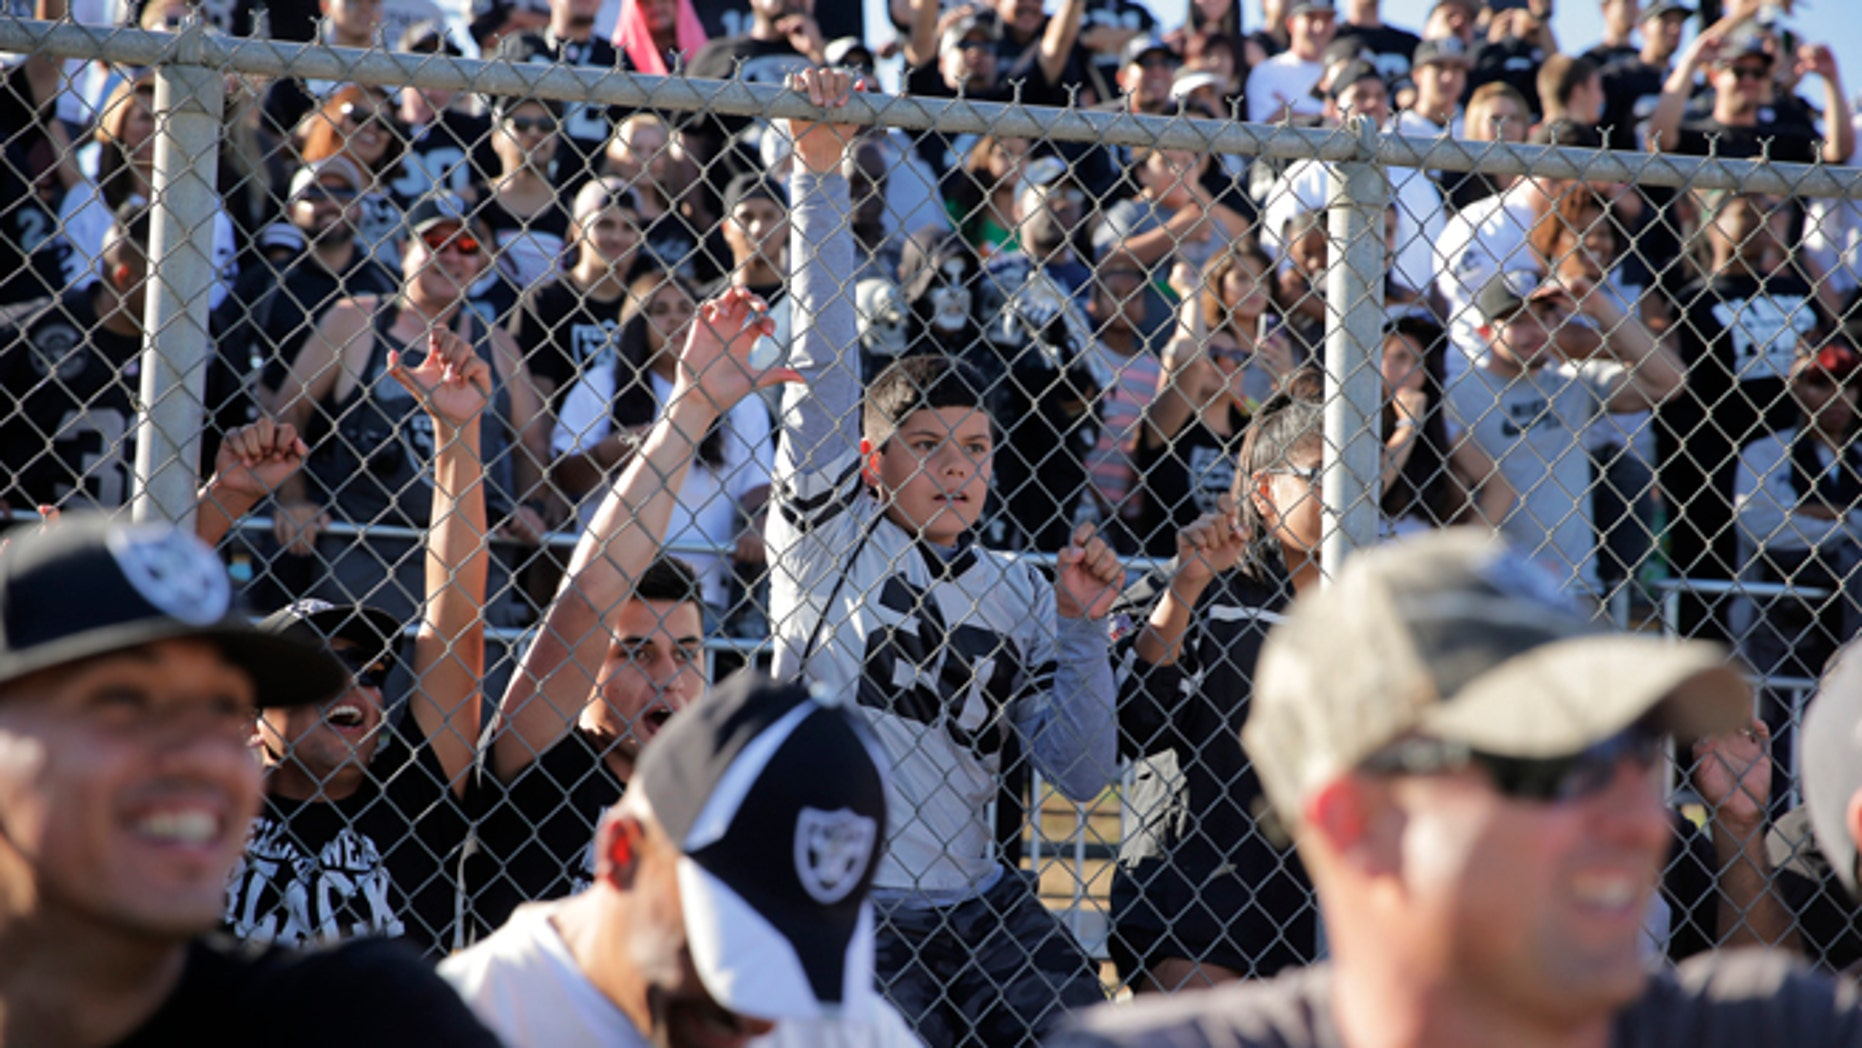 Oakland Raiders fans watch during the team's joint football practice with the Dallas Cowboys on Tuesday, Aug. 12, 2014, in Oxnard, Calif. (AP Photo/Jae C. Hong)